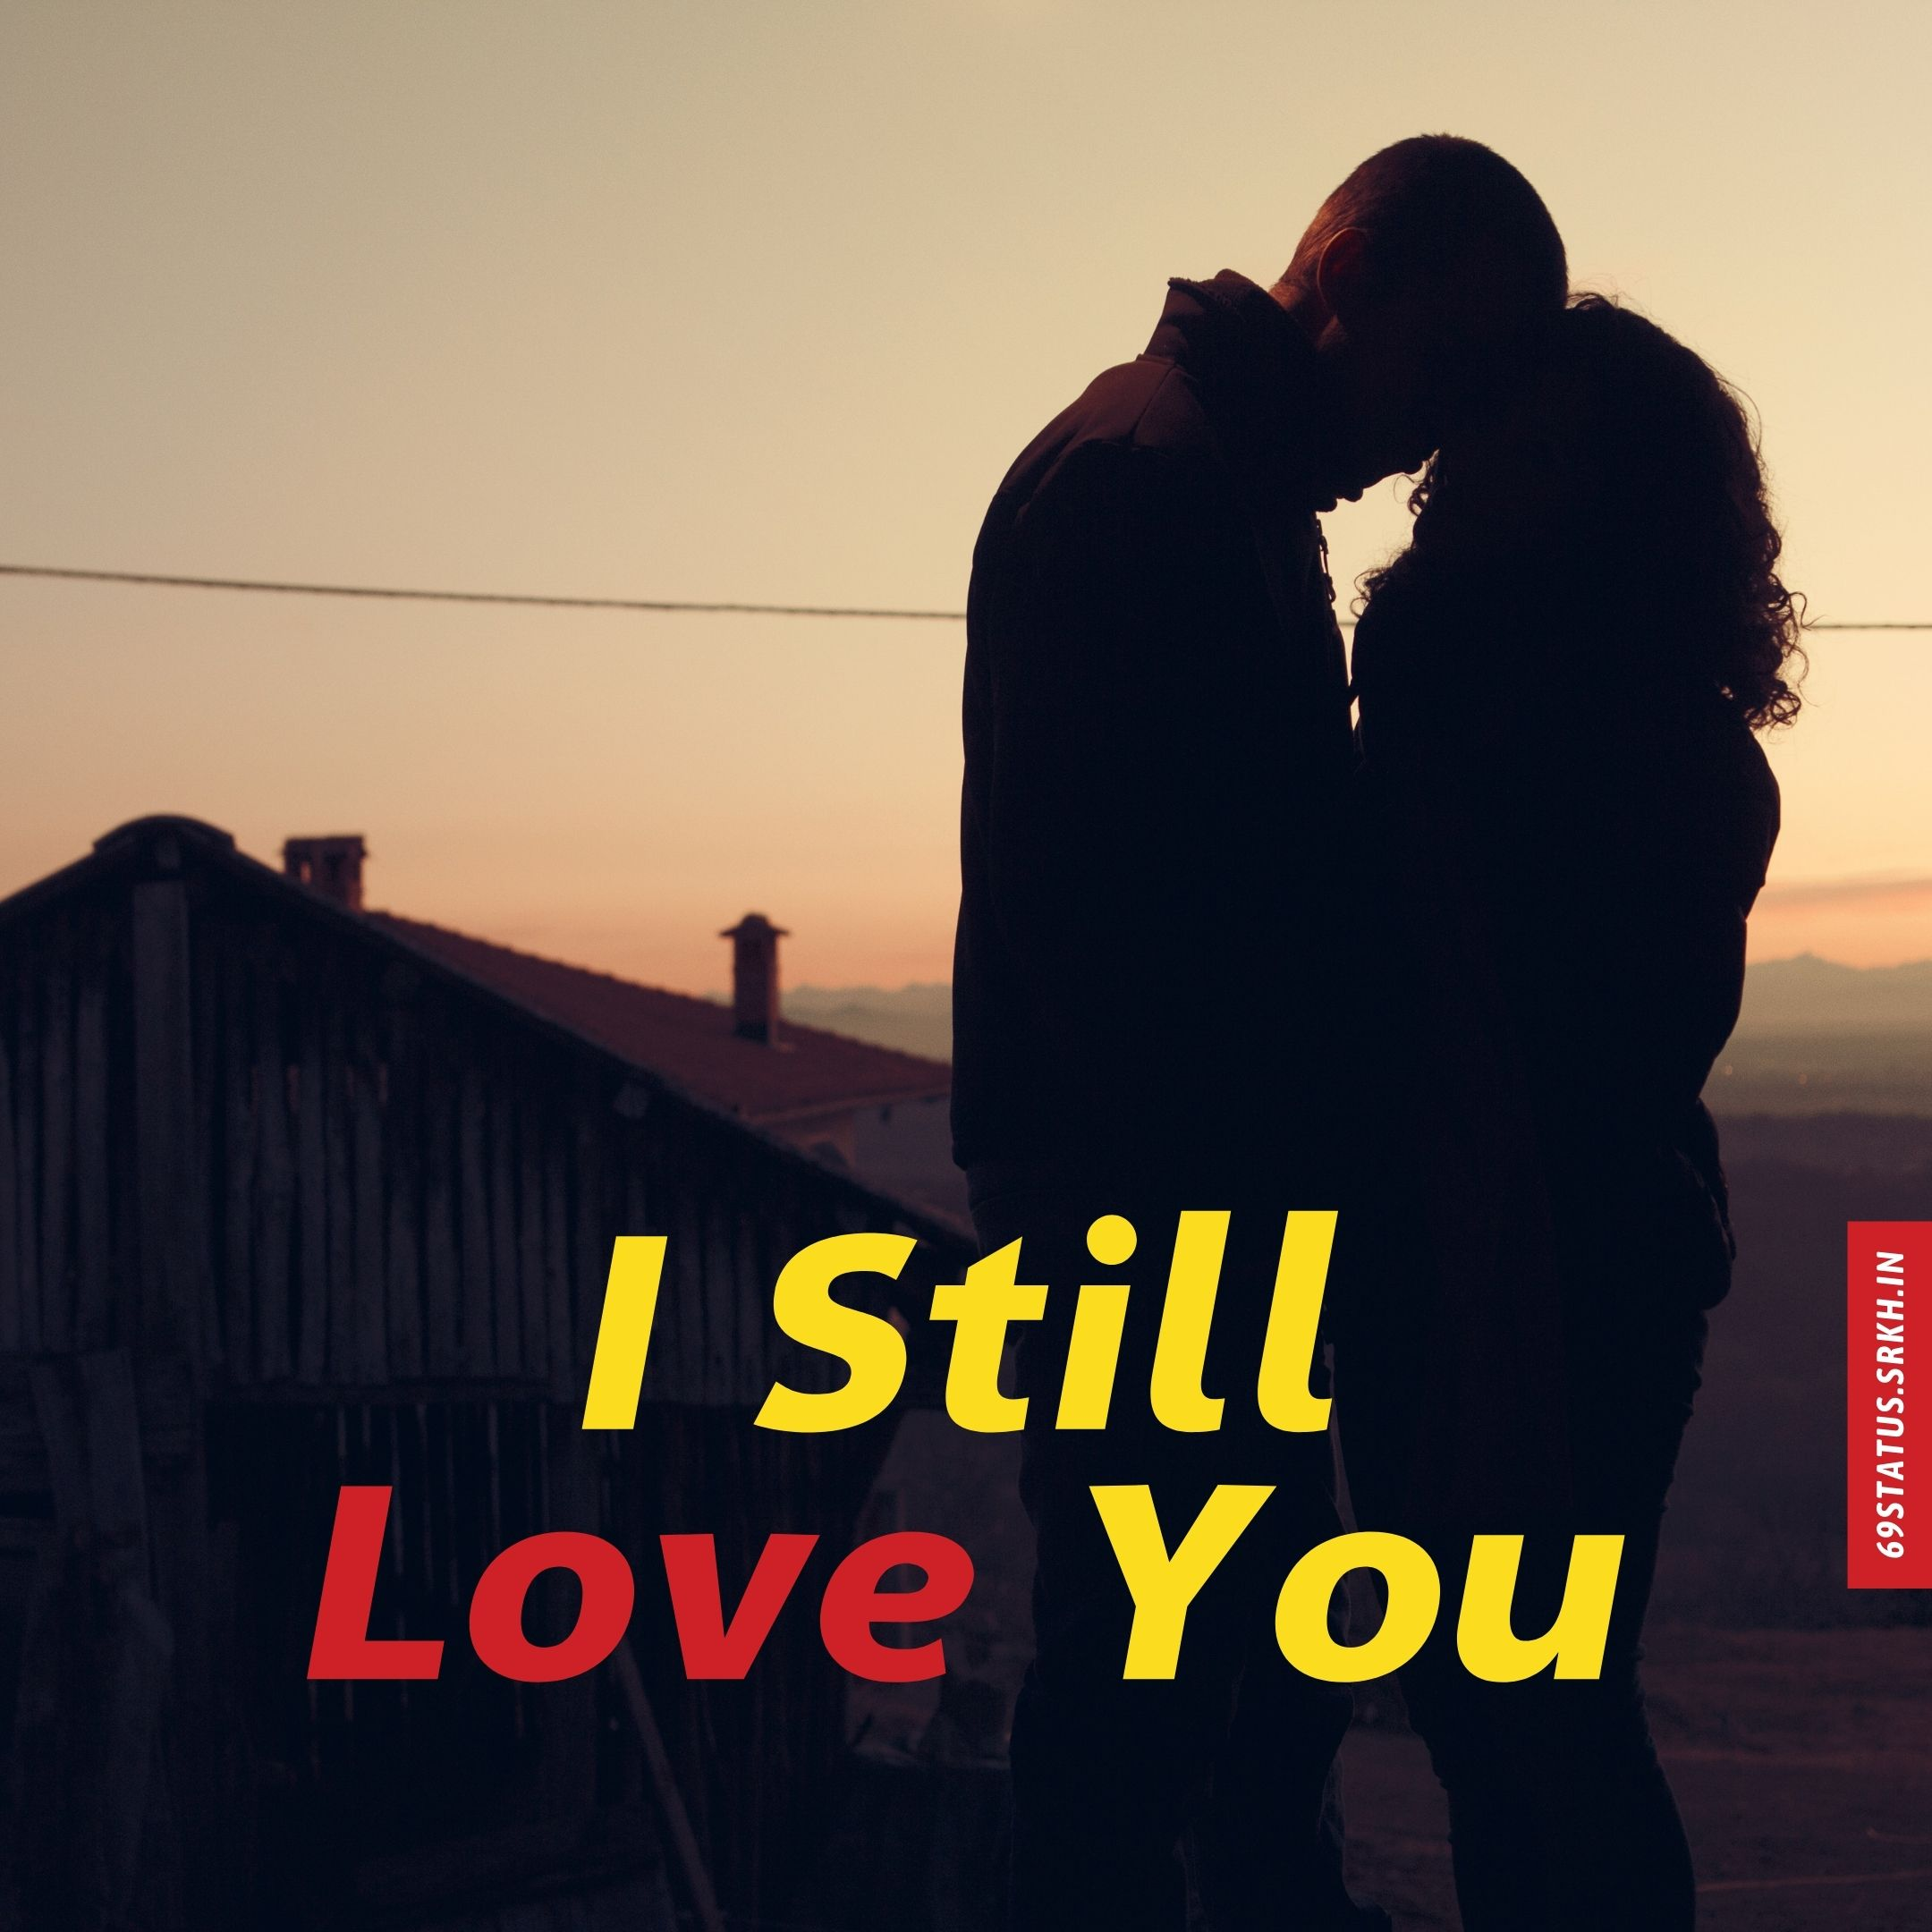 I still love you images full HD free download.